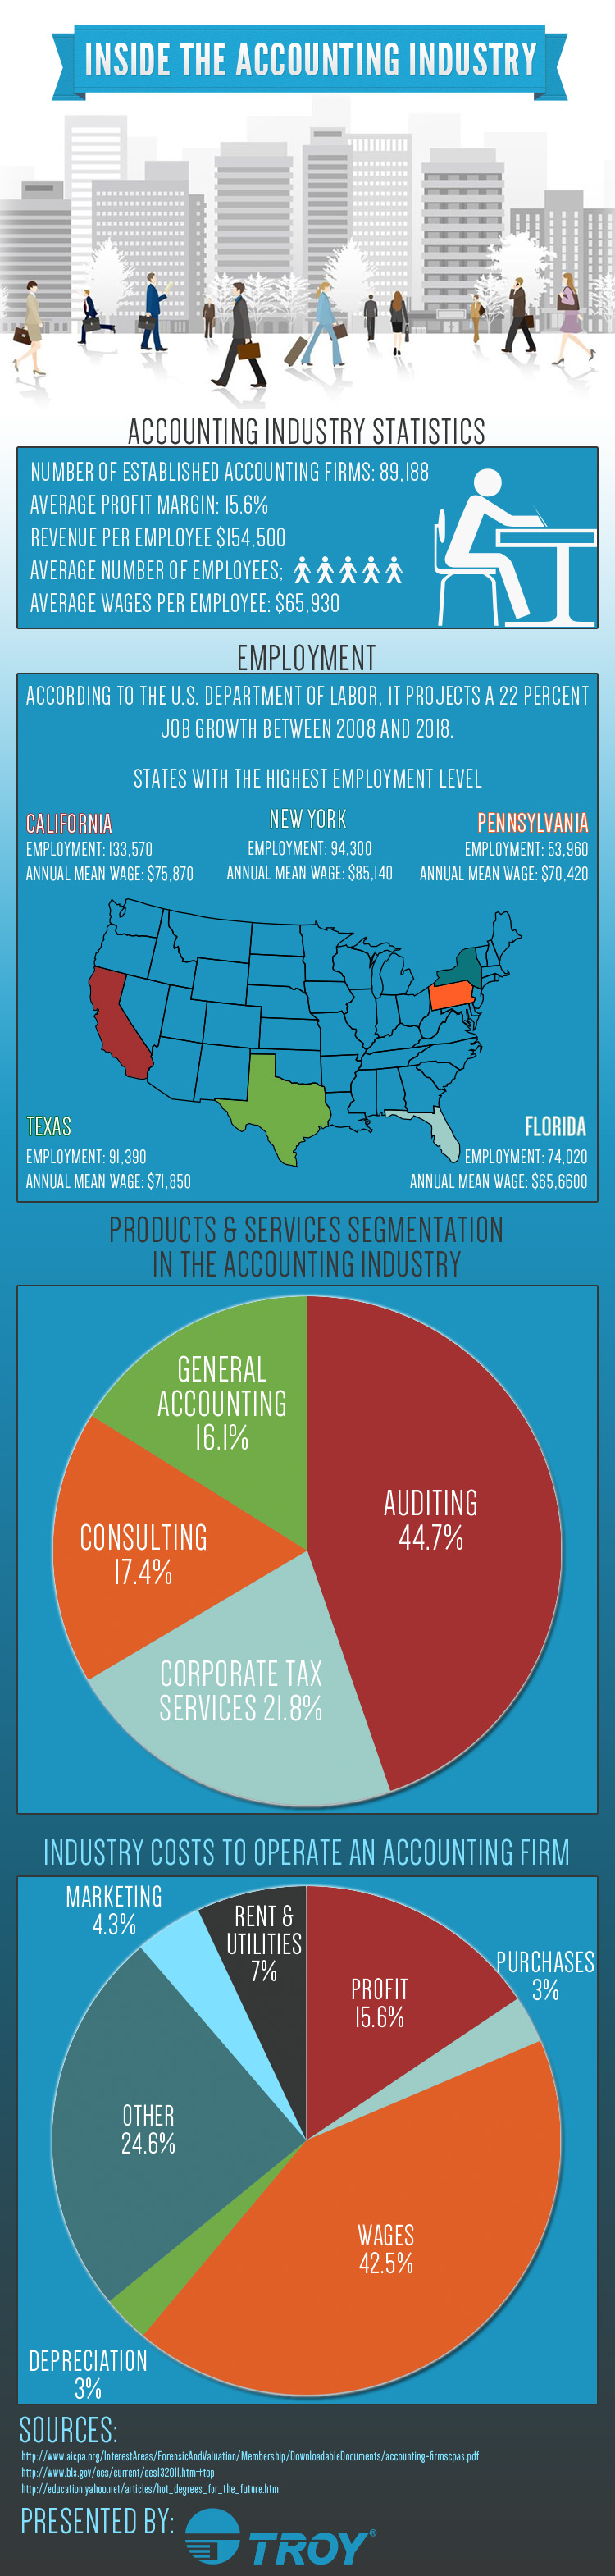 Inside the Accounting Industry